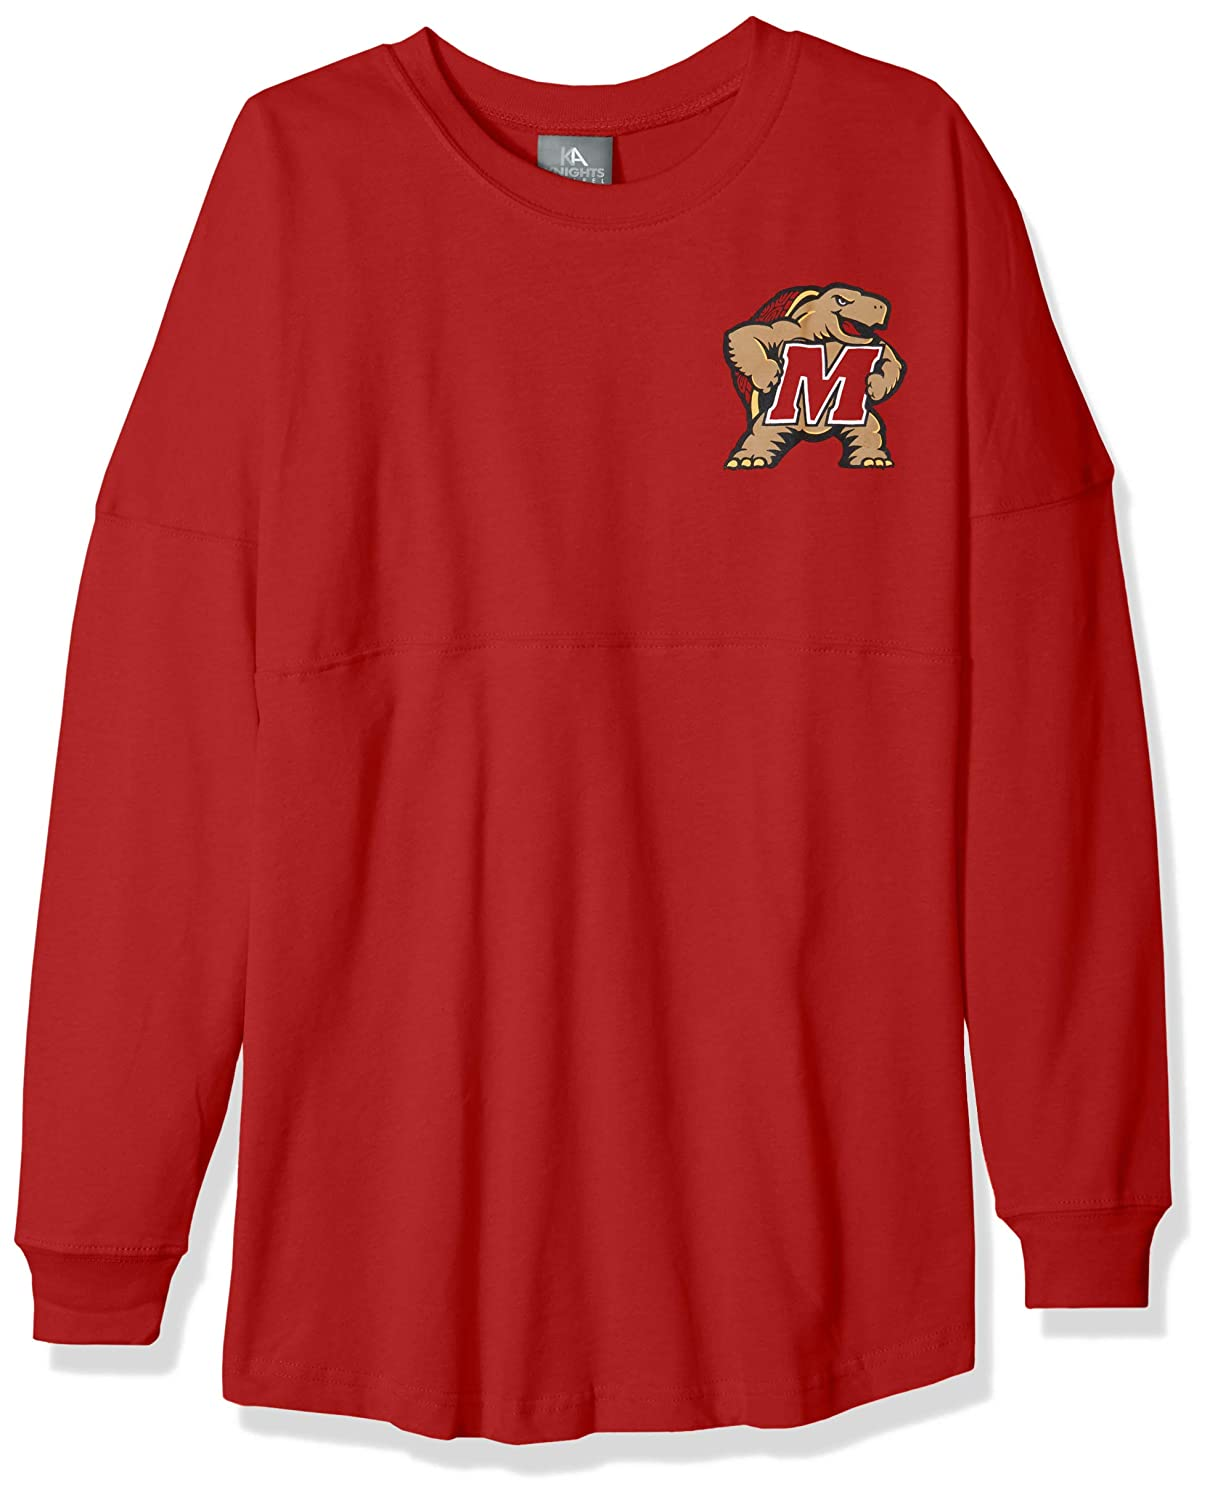 Athletic Red X-Large NCAA Maryland Terrapins Womens NCAA Womens Long Sleeve Mascot Style Teeknights Apparel NCAA Womens Long Sleeve Mascot Style Tee